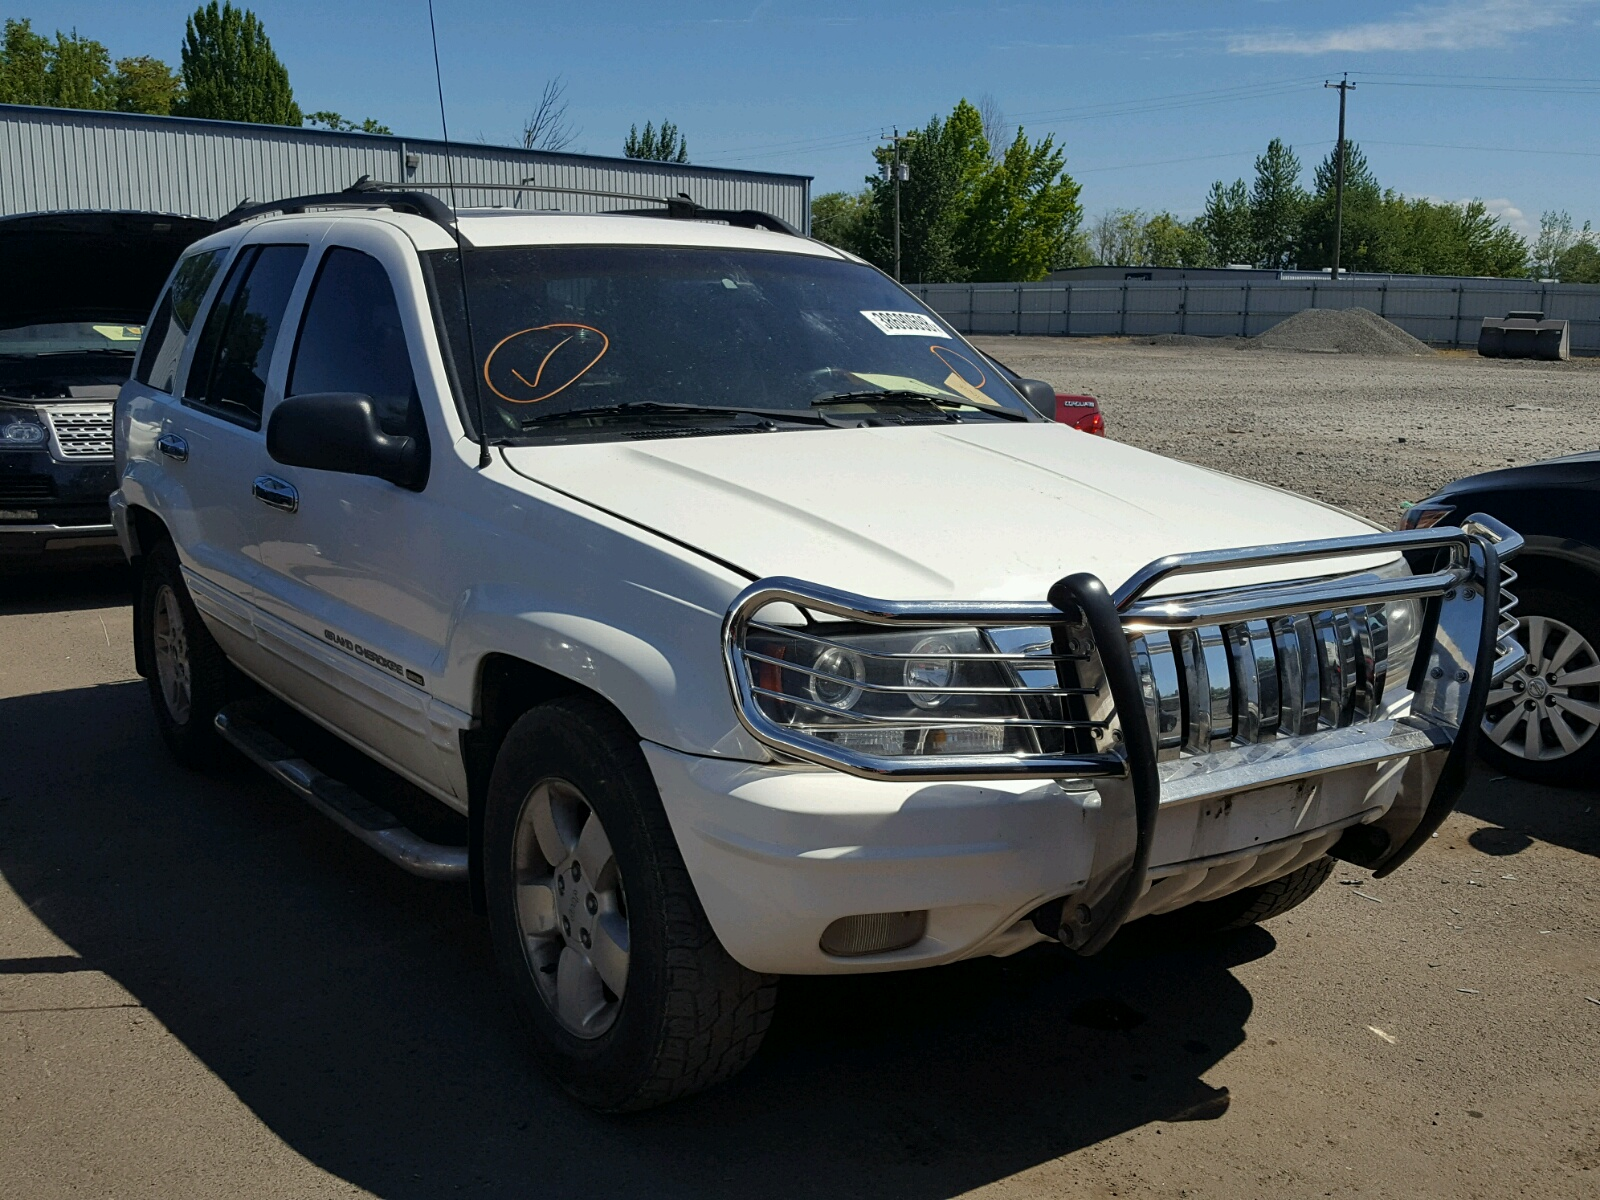 Salvage 2001 Jeep GRAND CHEROKEE for sale